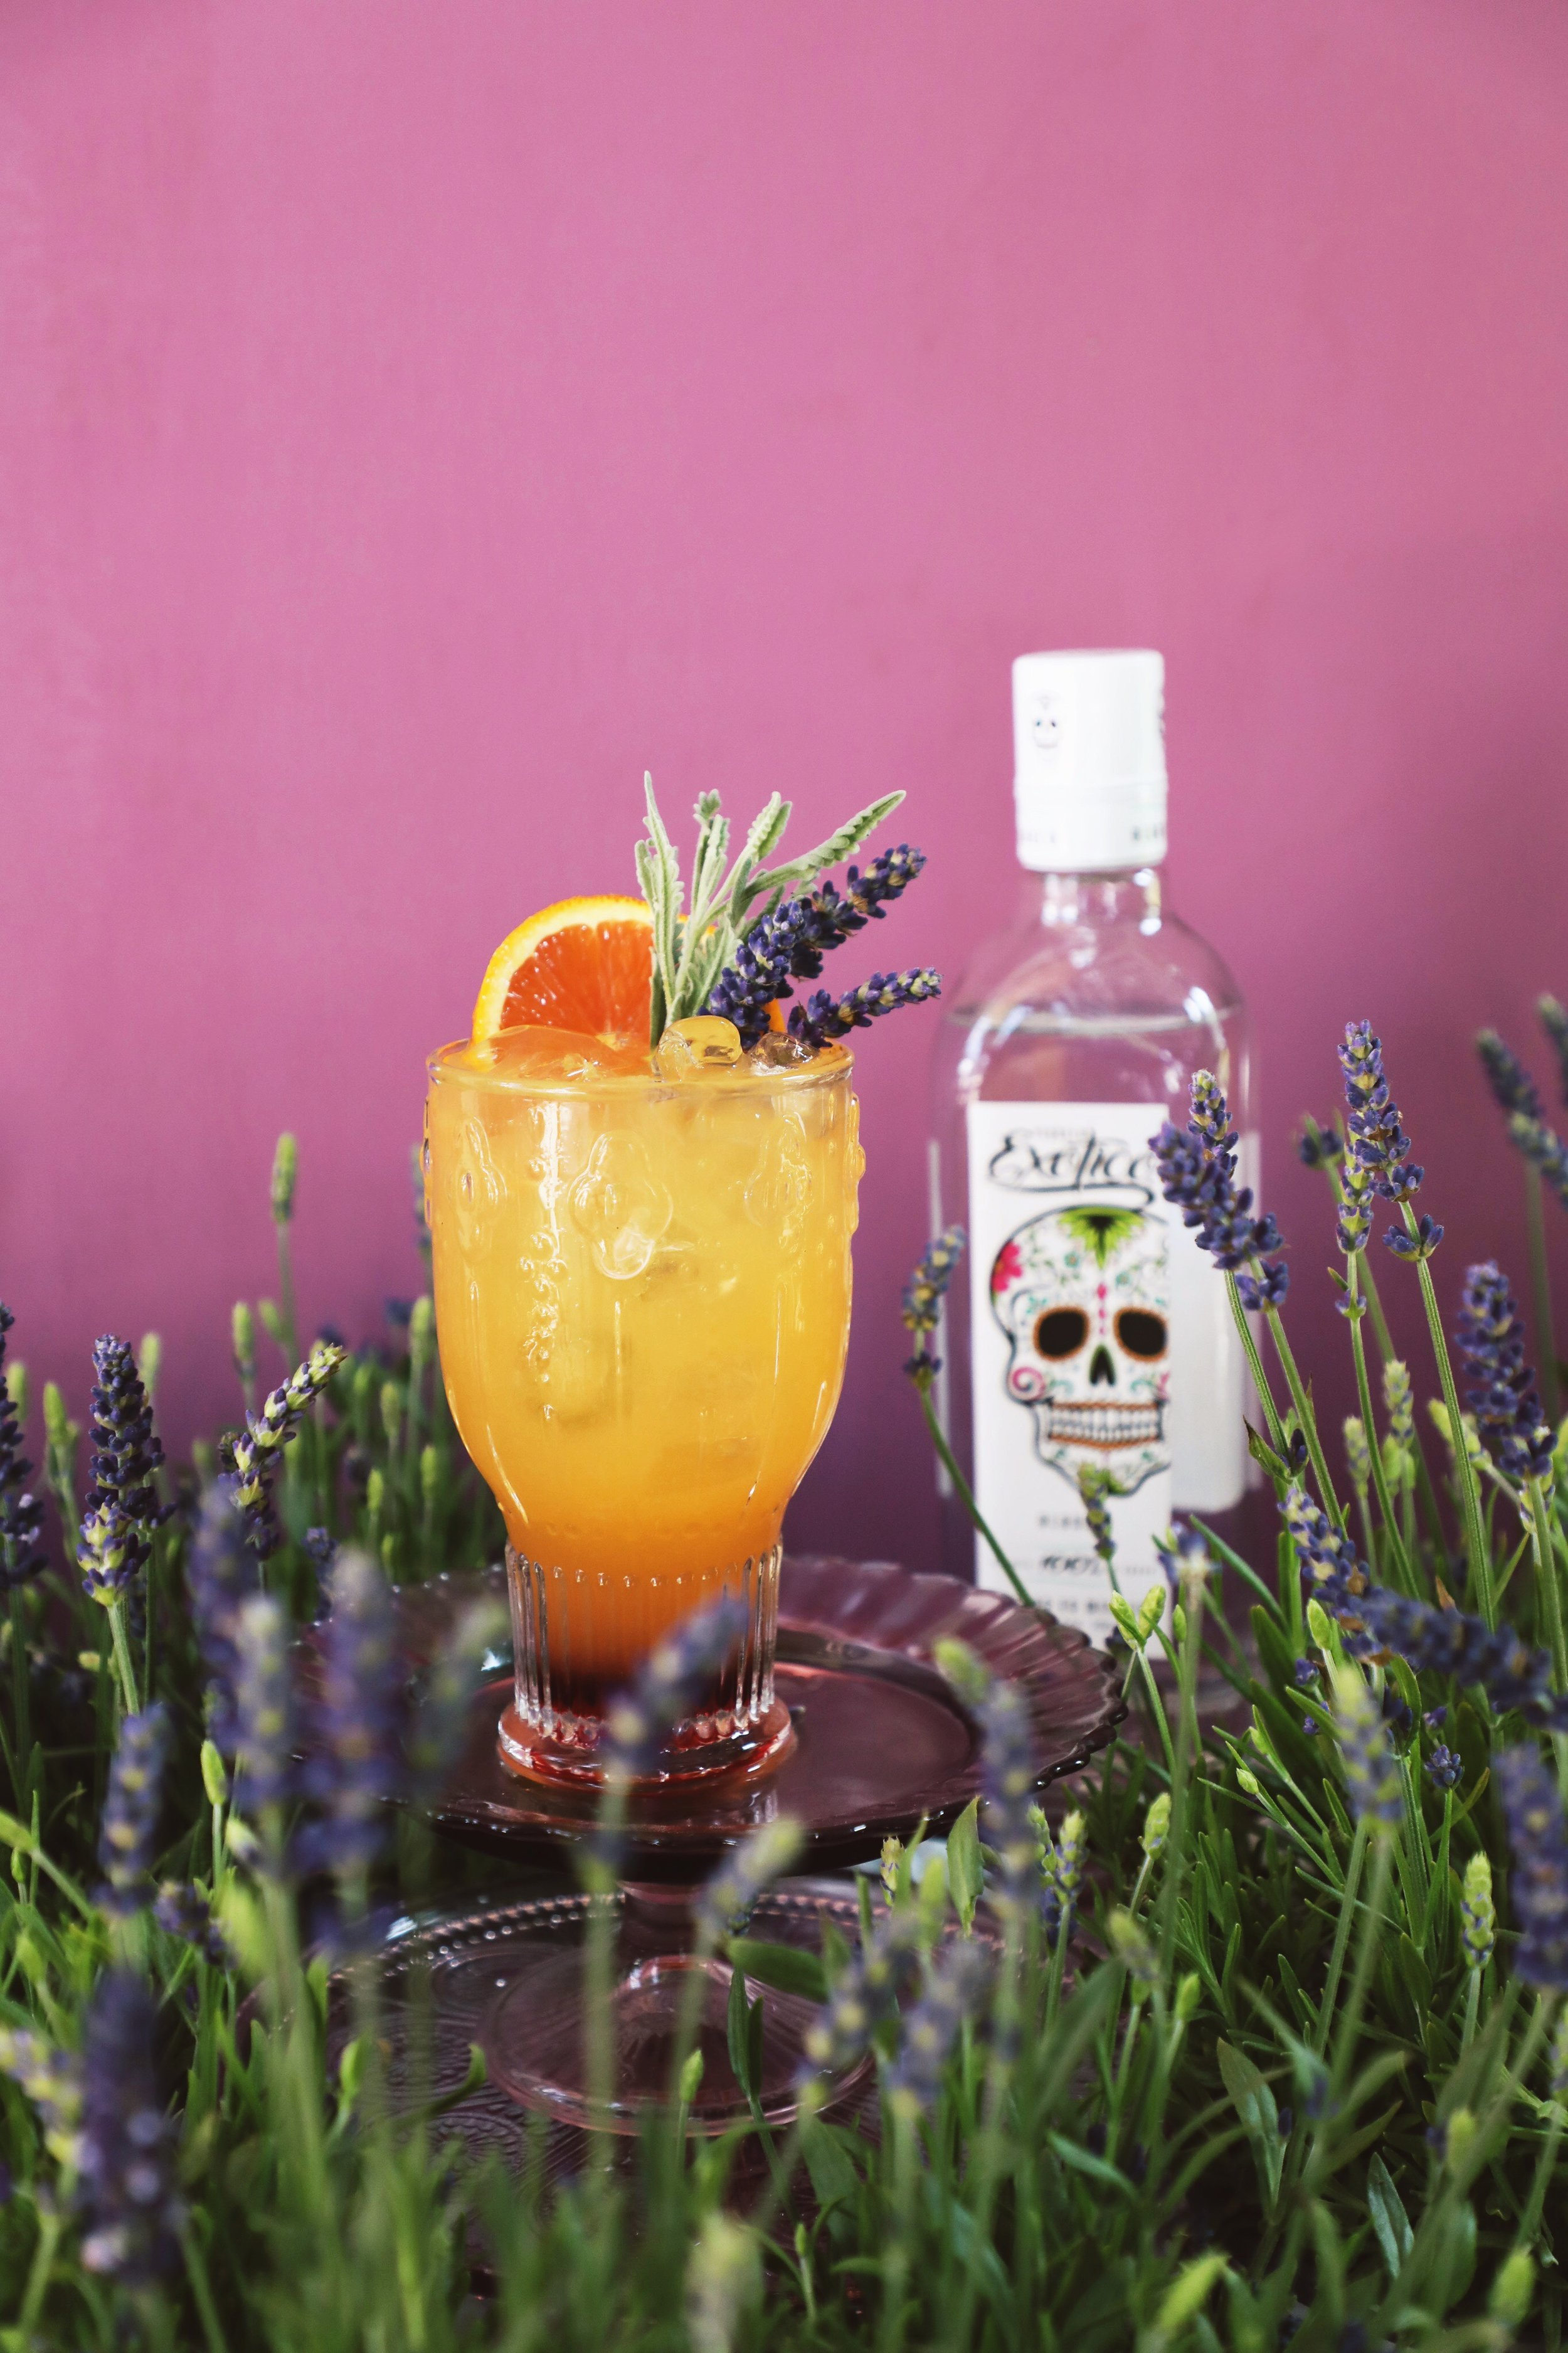 Lavender Tequila Sunrise made with Exotico Blanco Tequila, fresh orange juice, and a lavender-infused grenadine | drinkingwithchickens.com